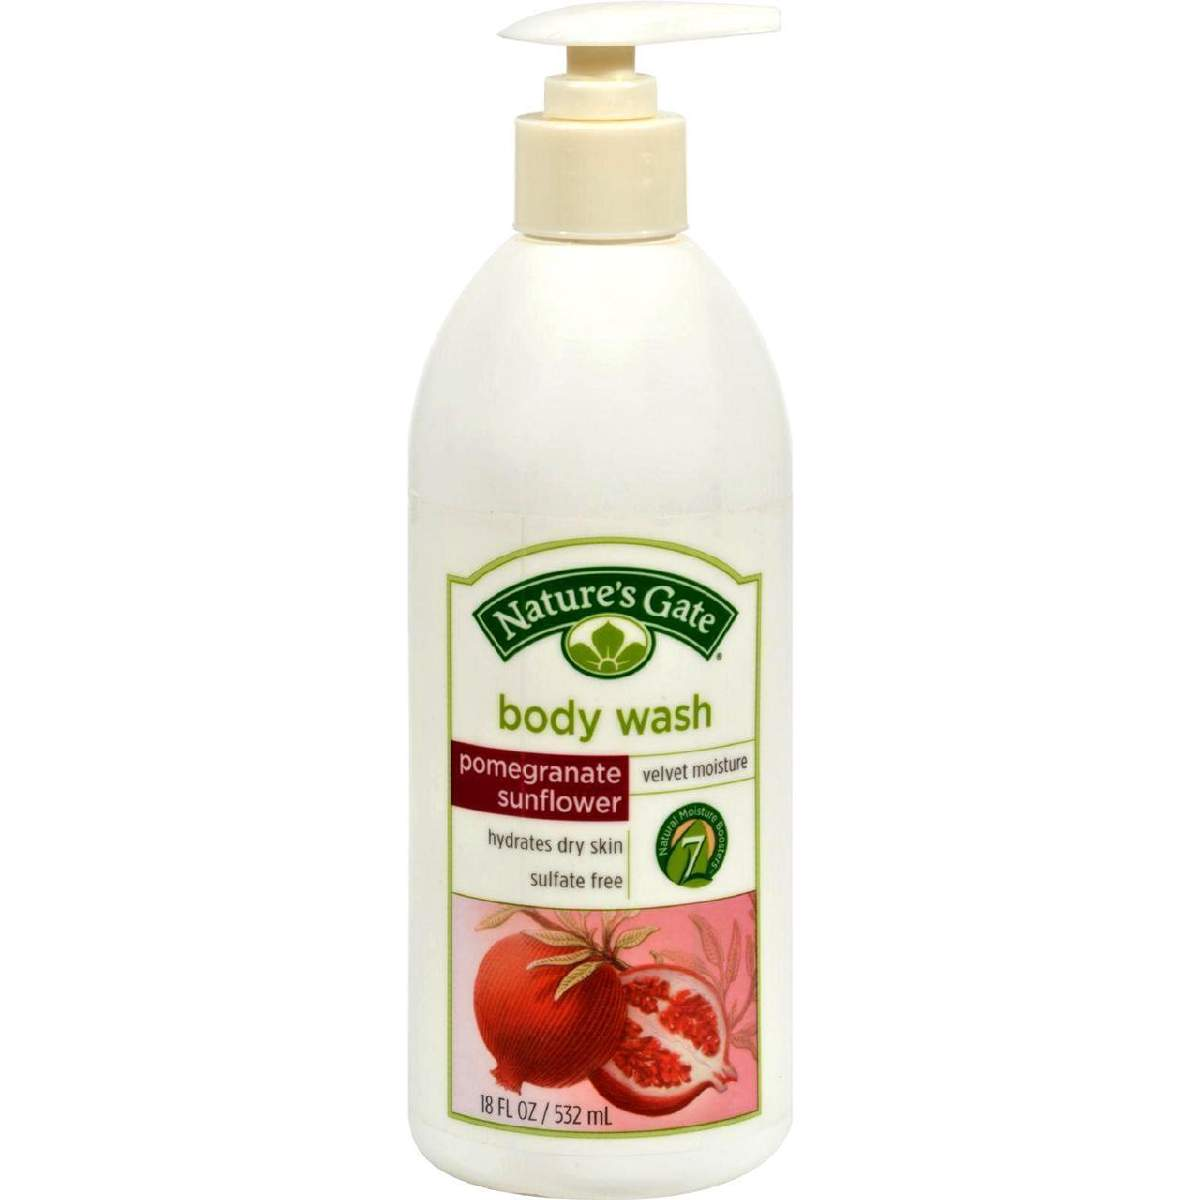 Natures Gate Body Wash Velvet Moisture Pomegranate Sunflower - 18 Fl Oz